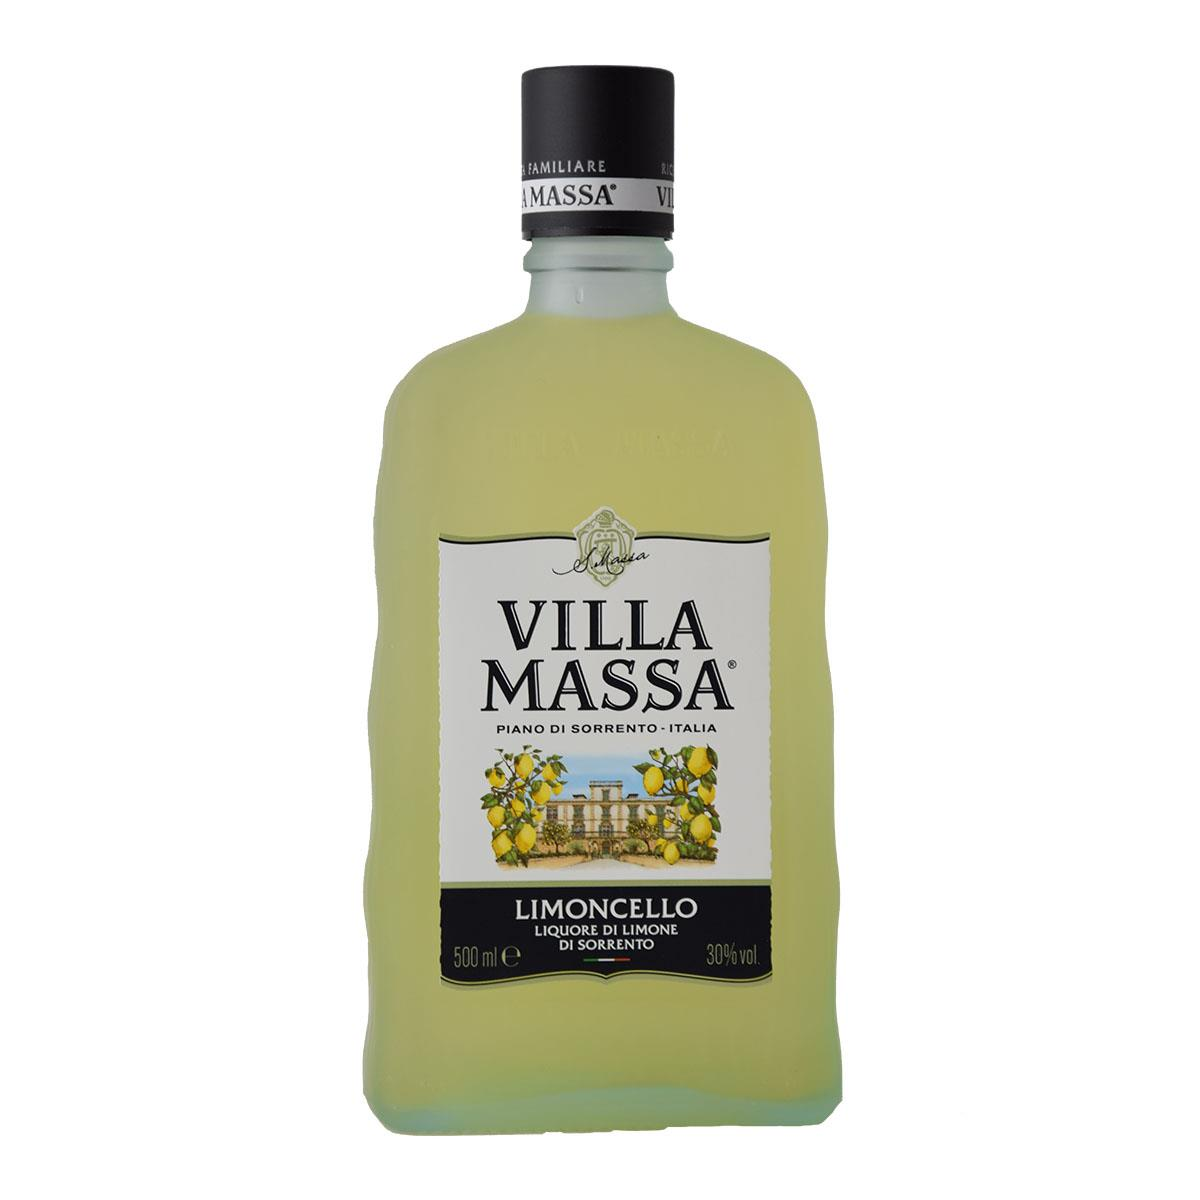 Villa Massa Limoncello 500ml